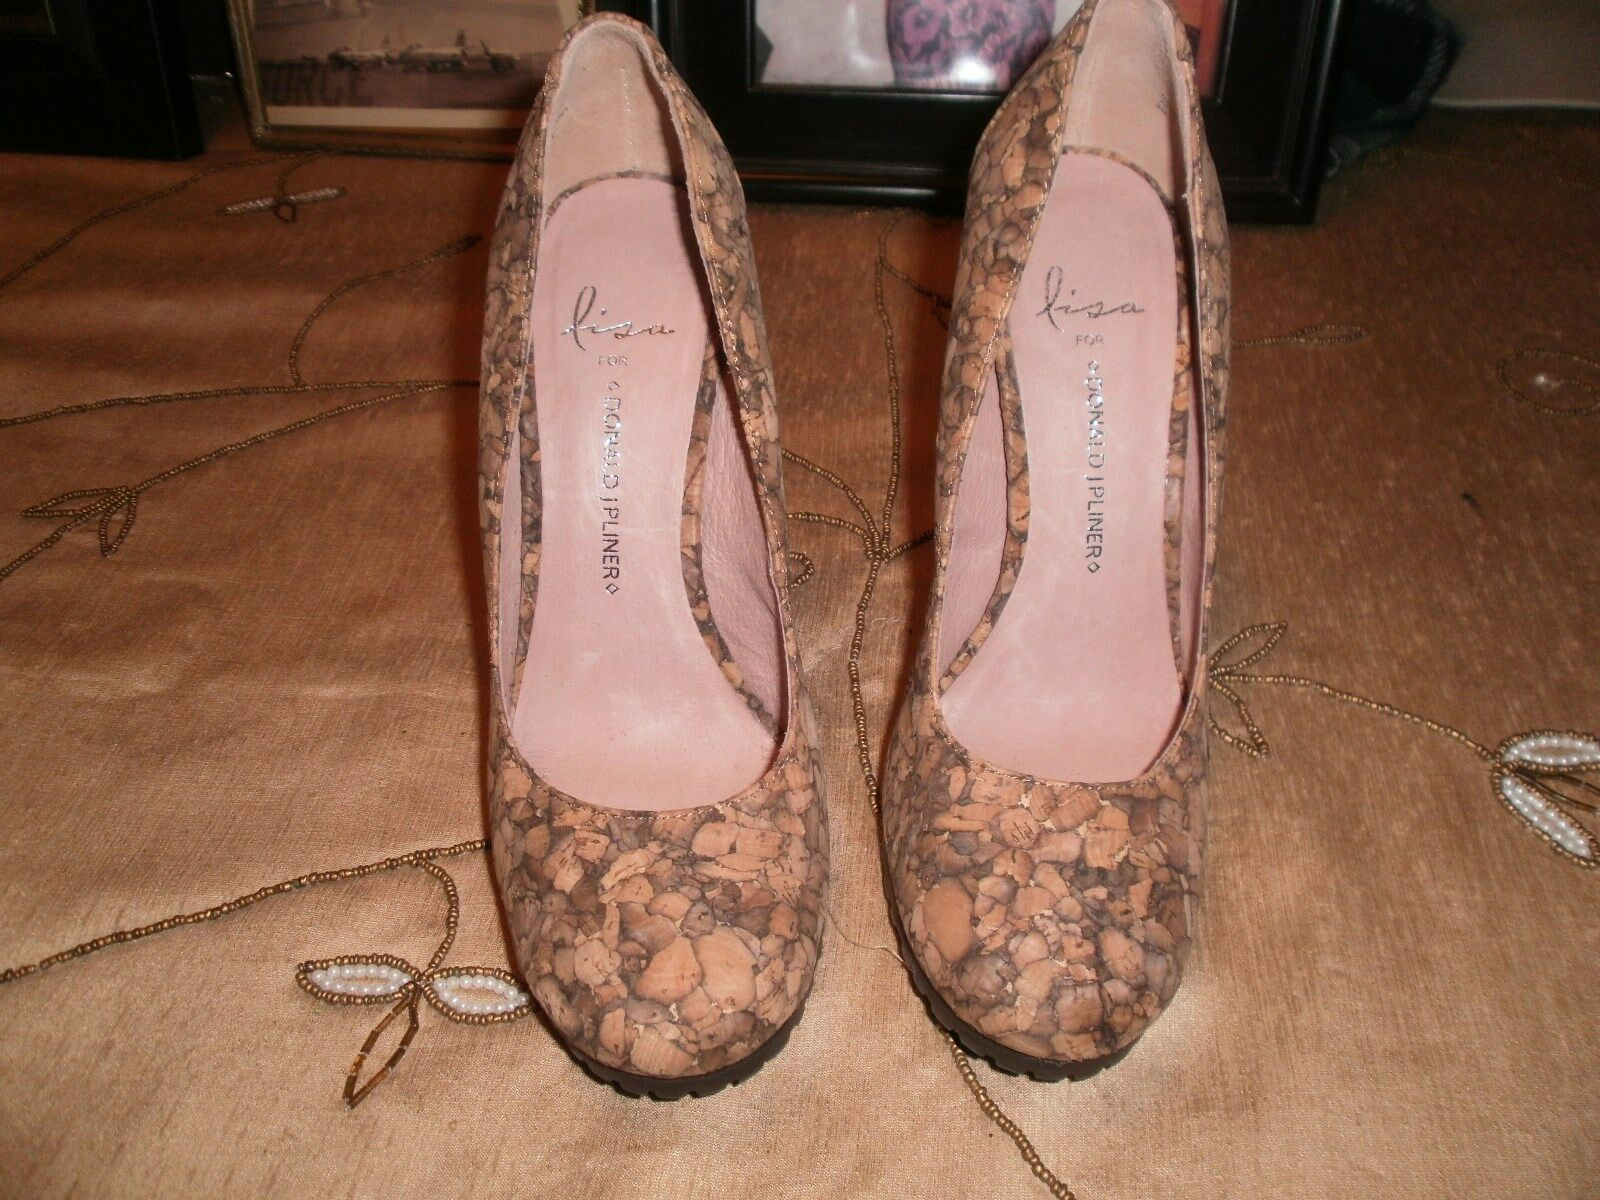 LISA BY DONALD J PLINER WOMENS PUMPS-SHADES OF BROWN & CORK TEXTURED IN SIZE 6M